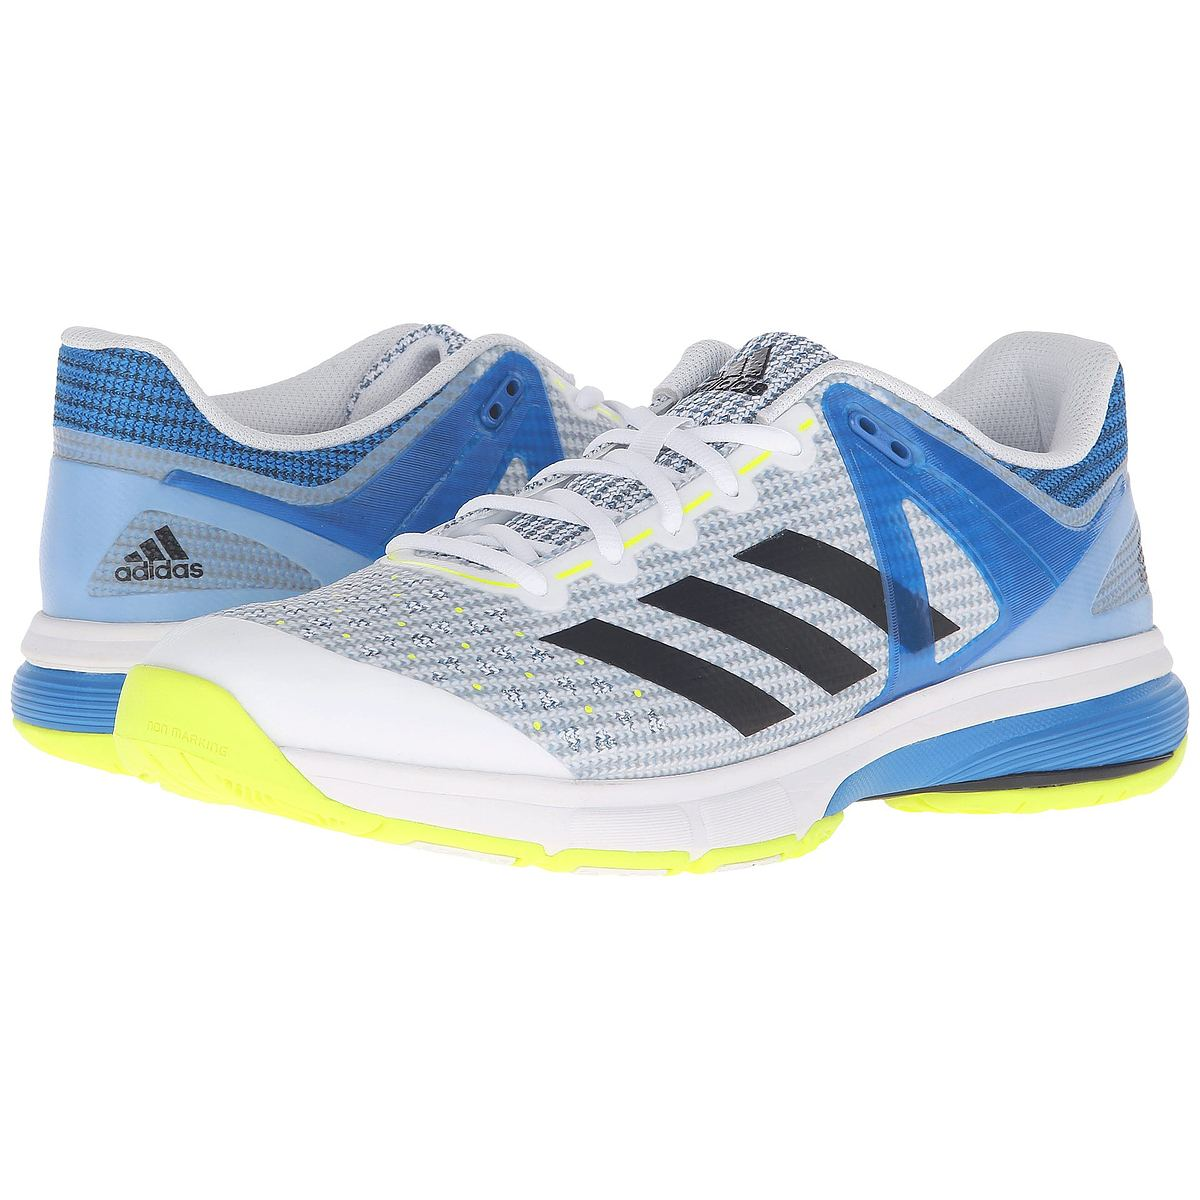 Adidas Open Shoes Shoes